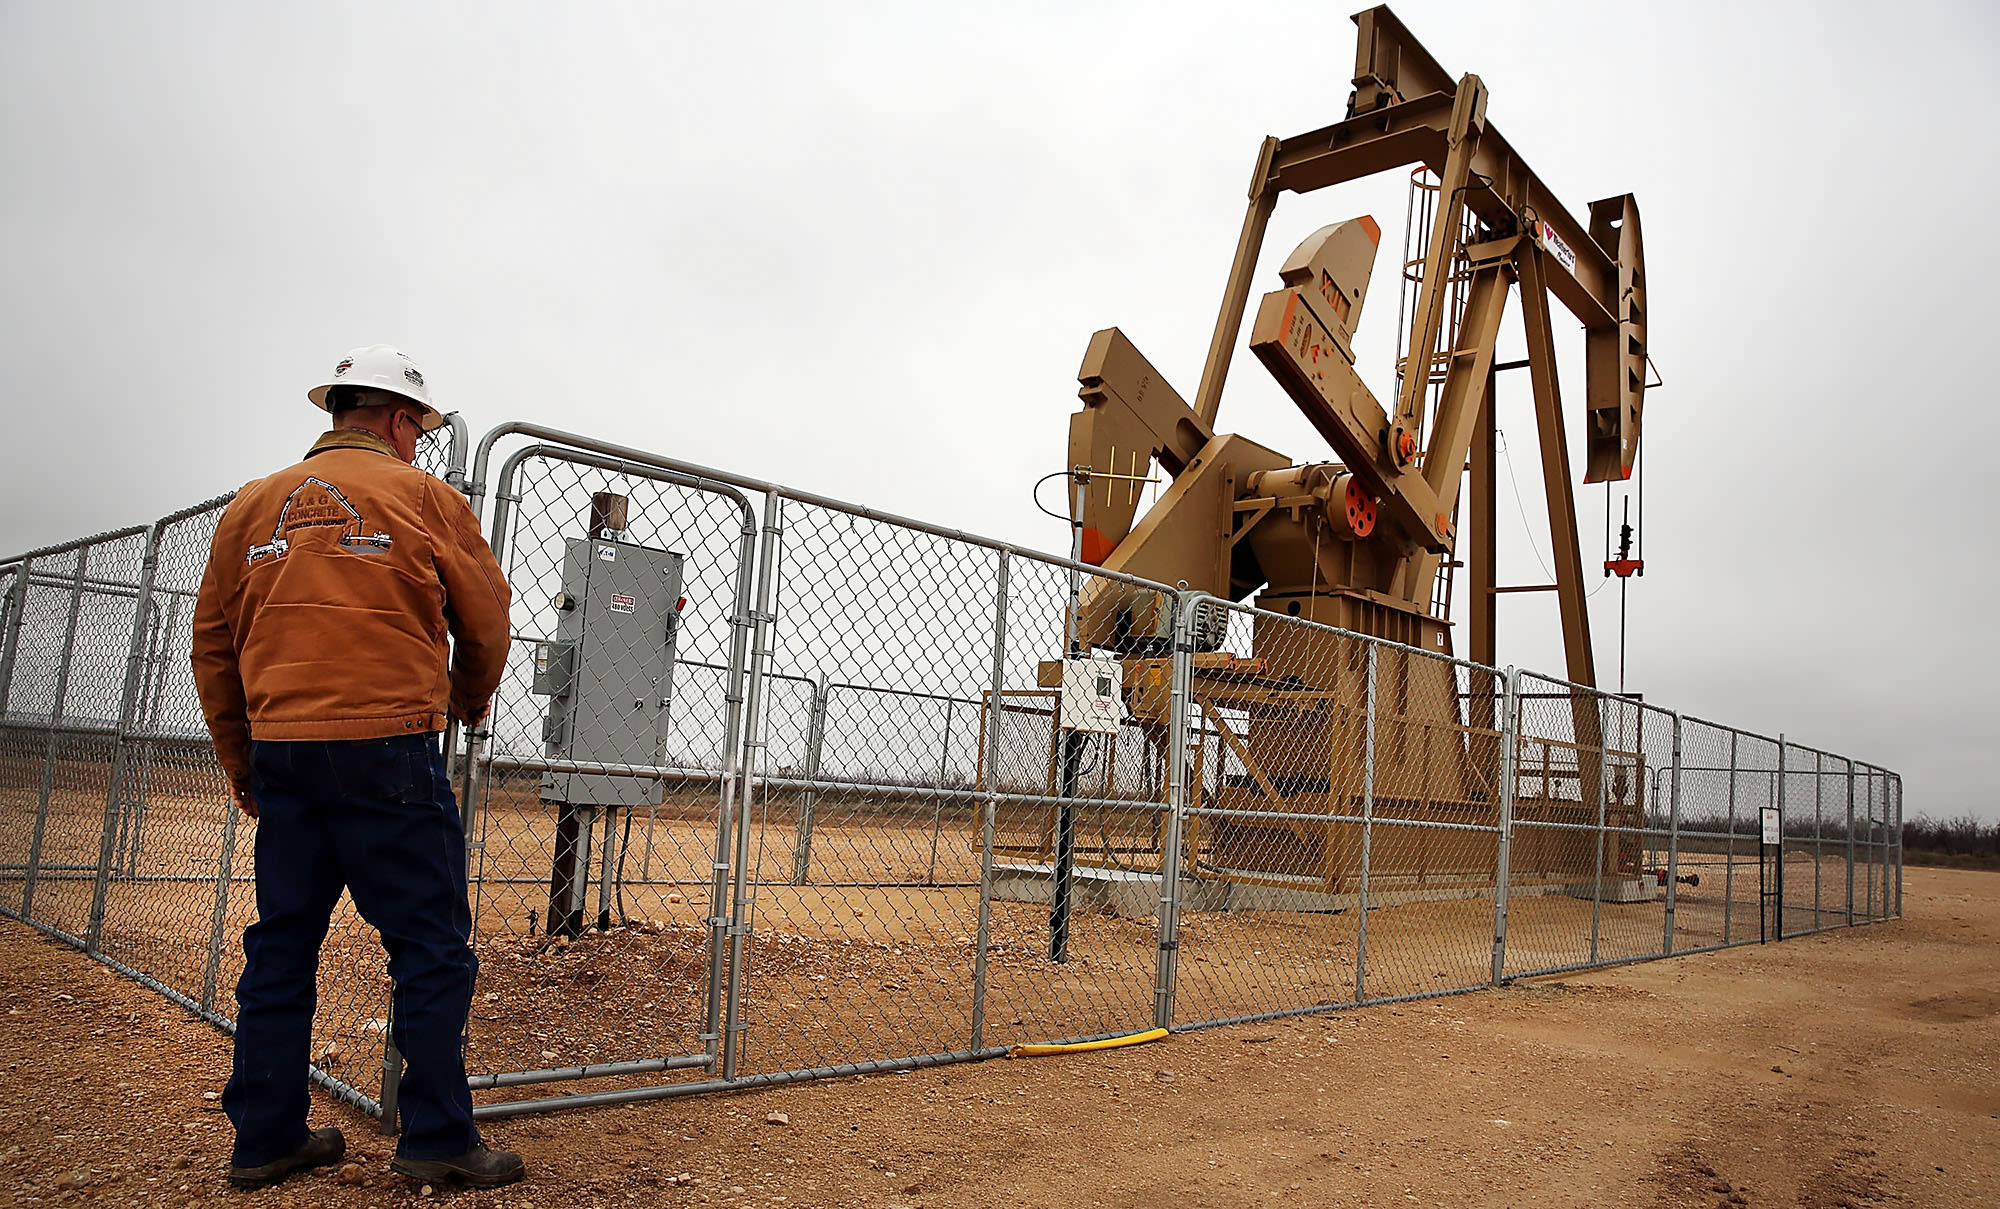 Reusable: Oil well pump jack Permian Basin Texas